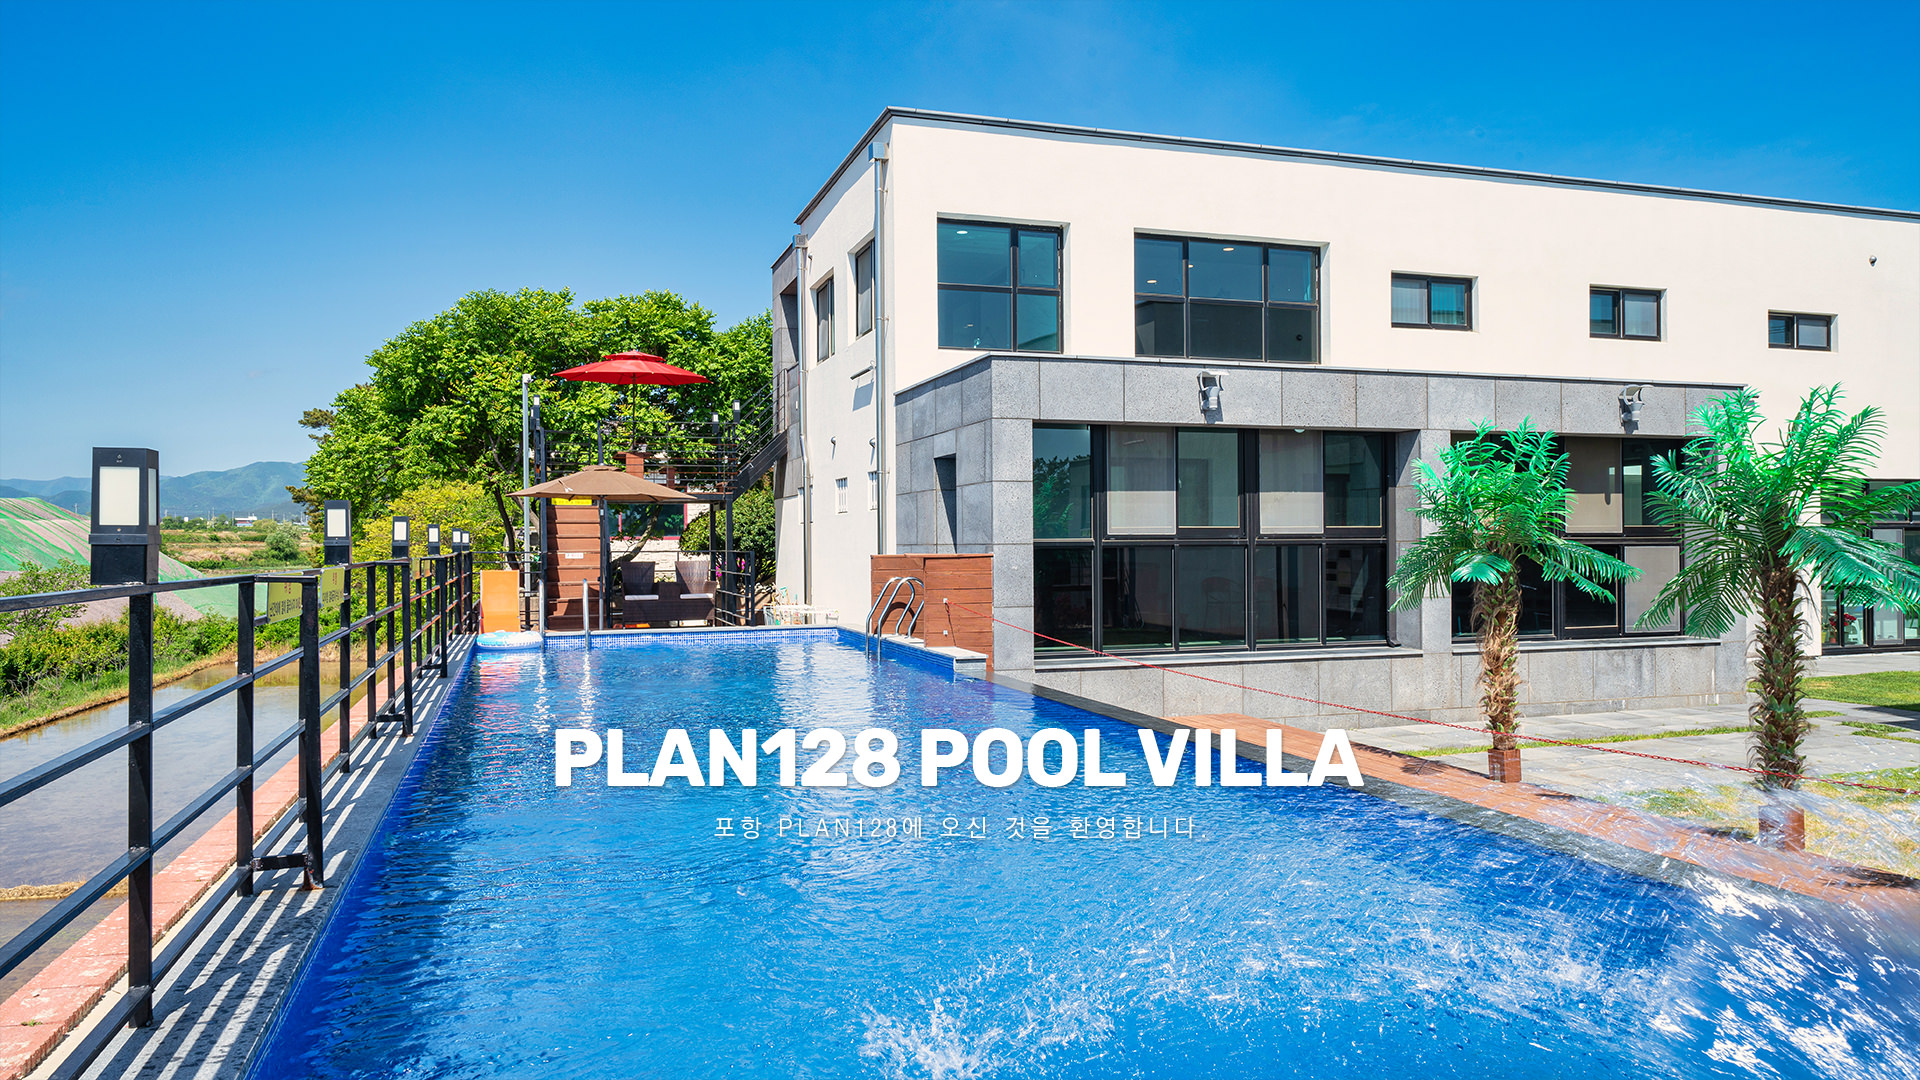 WELCOME TO PLAN128 POOLVILLA